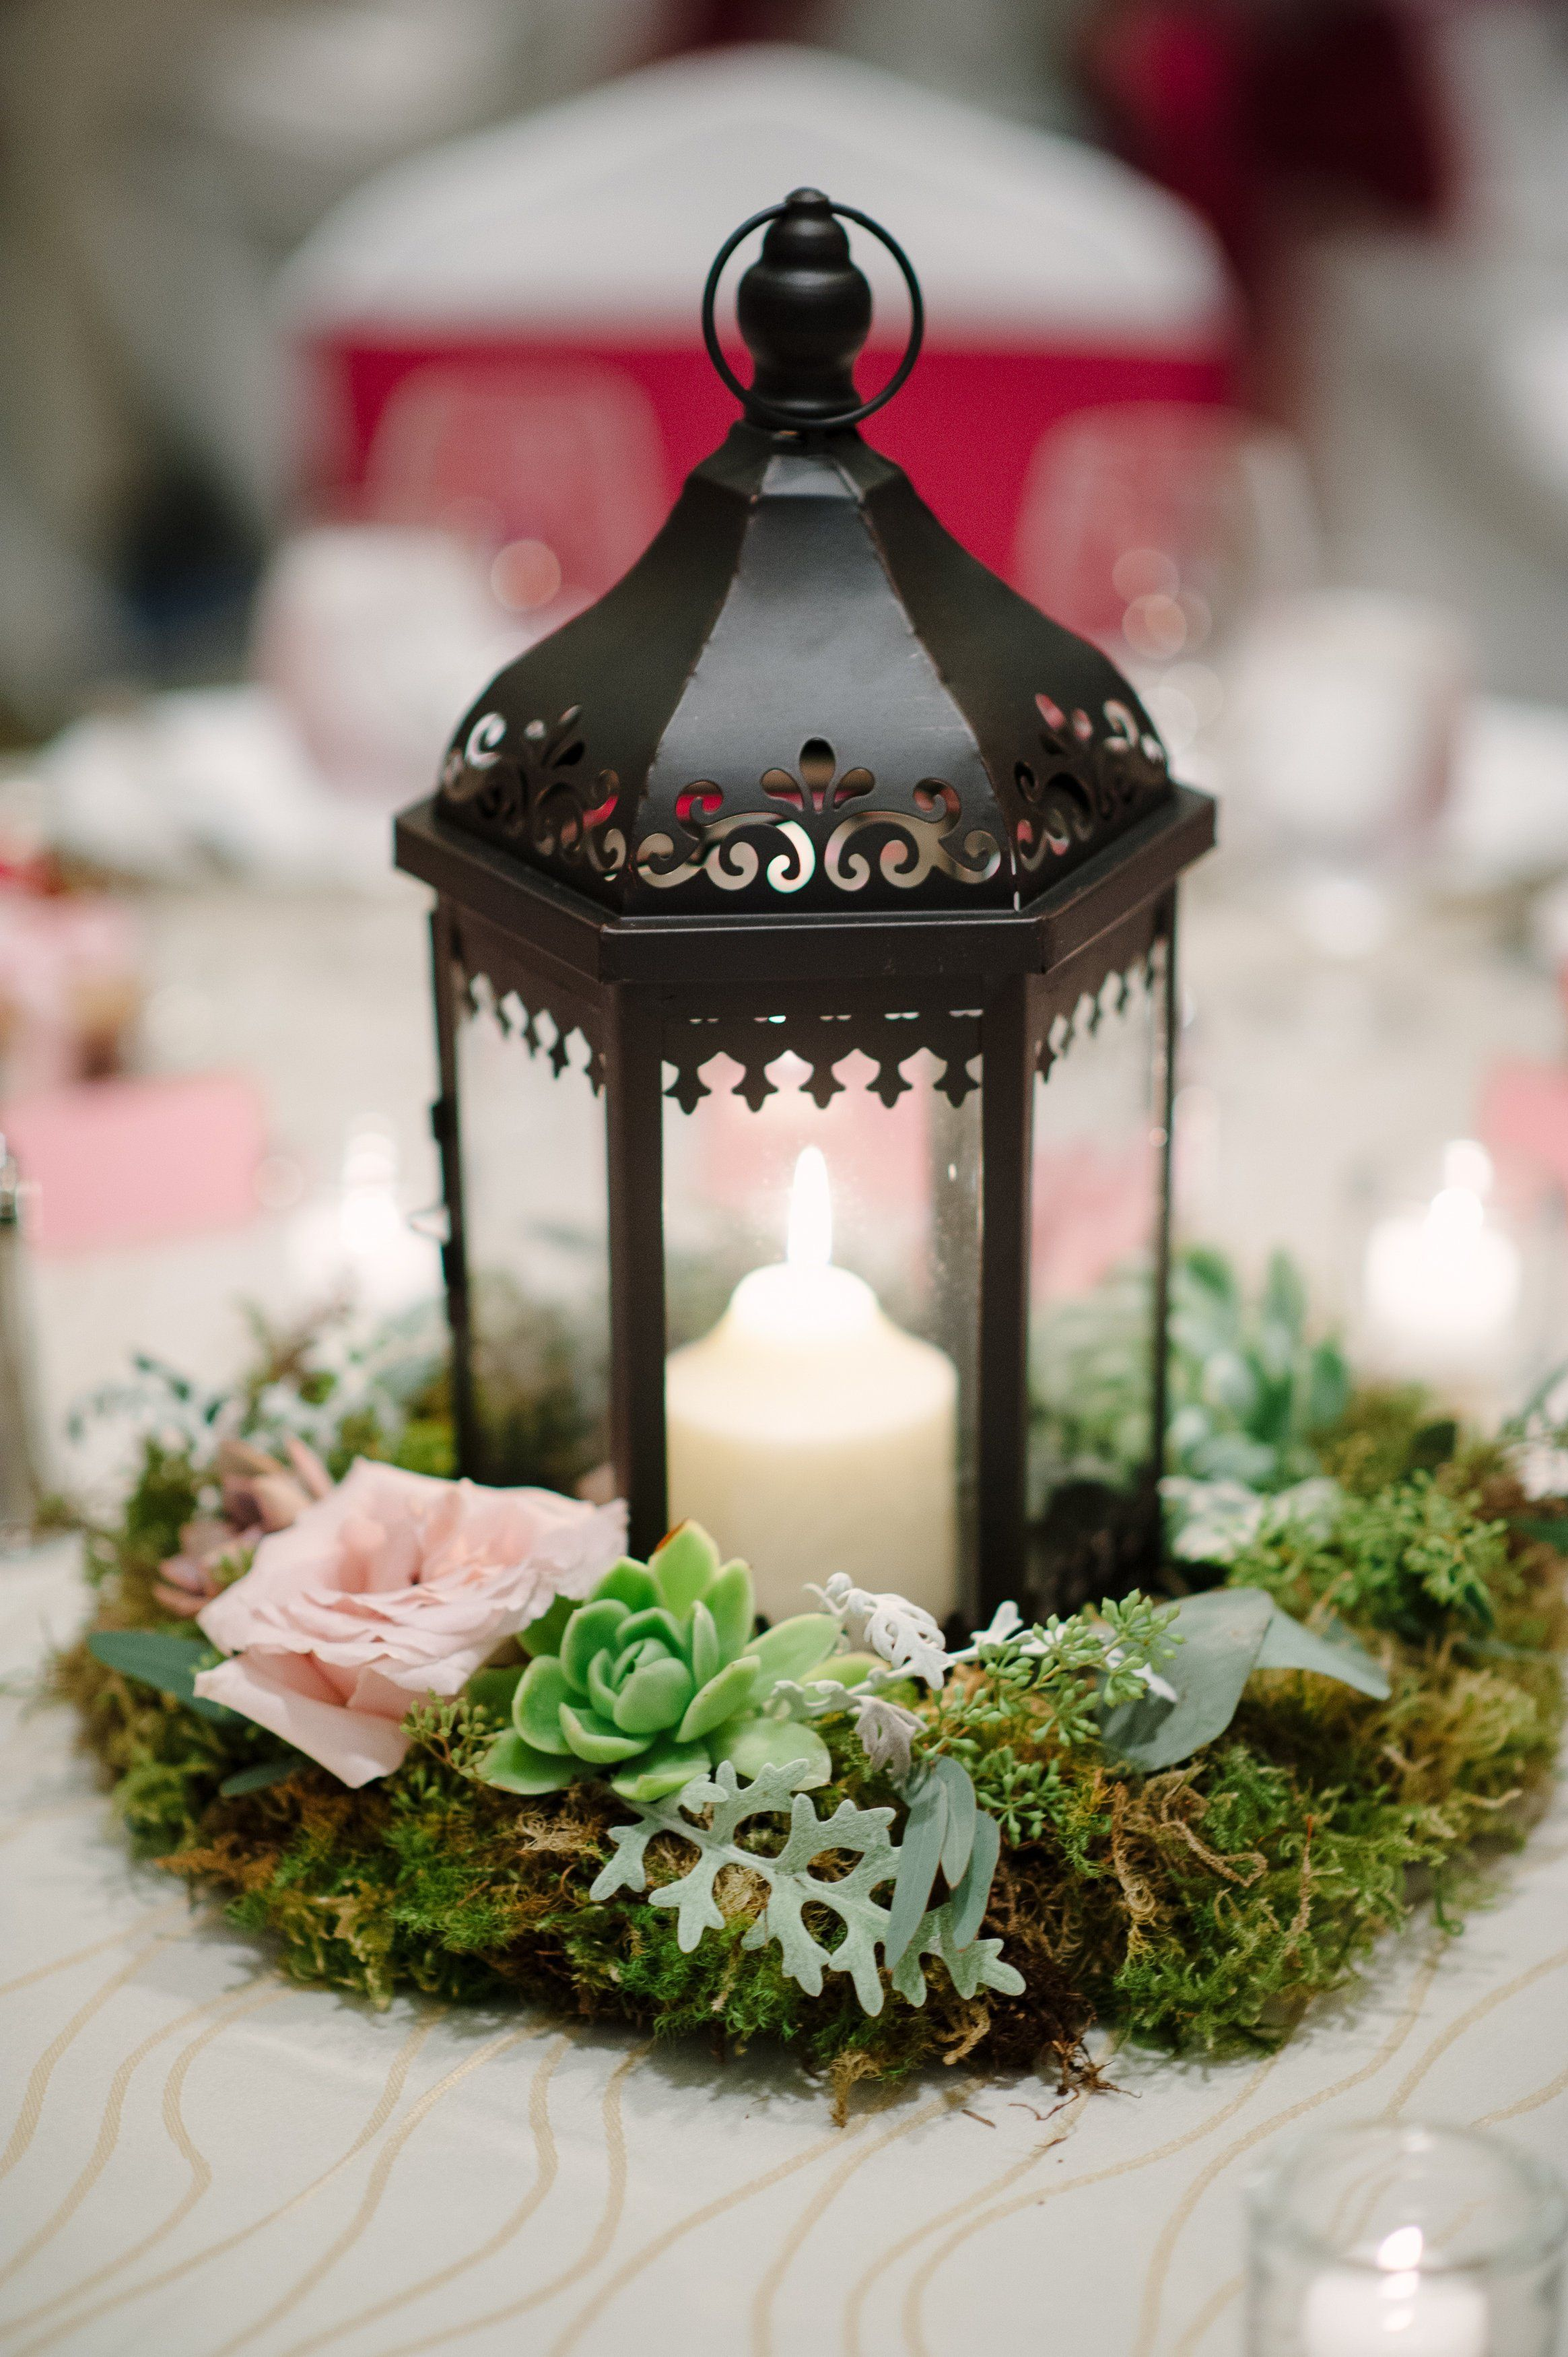 Romantic candle lanterns were surrounded by green and